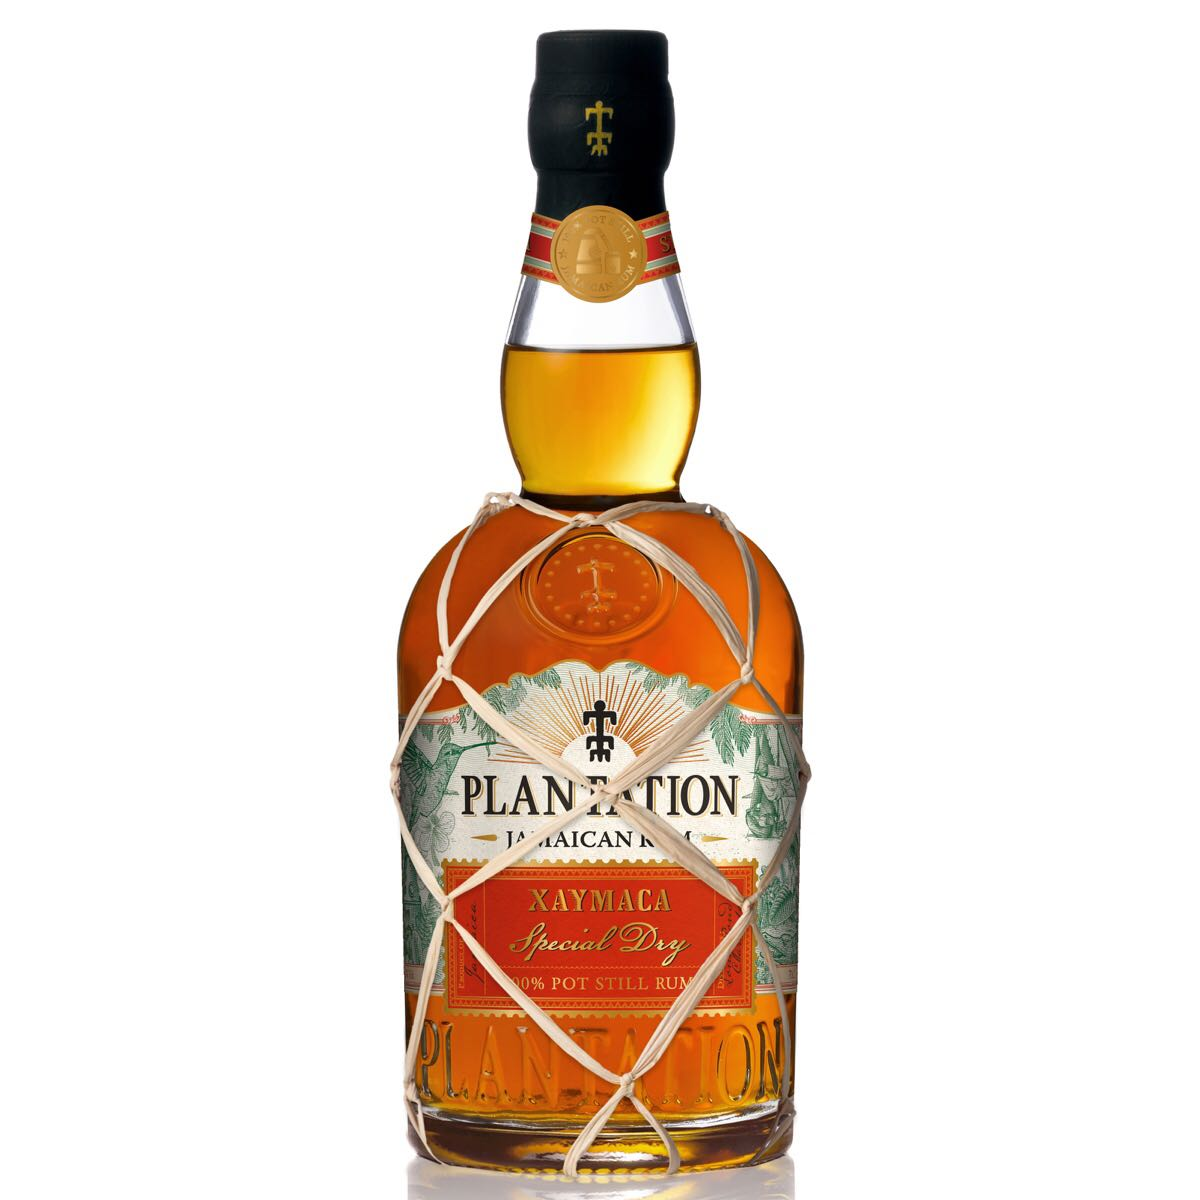 Bottle image of Plantation XAYMACA Special Dry